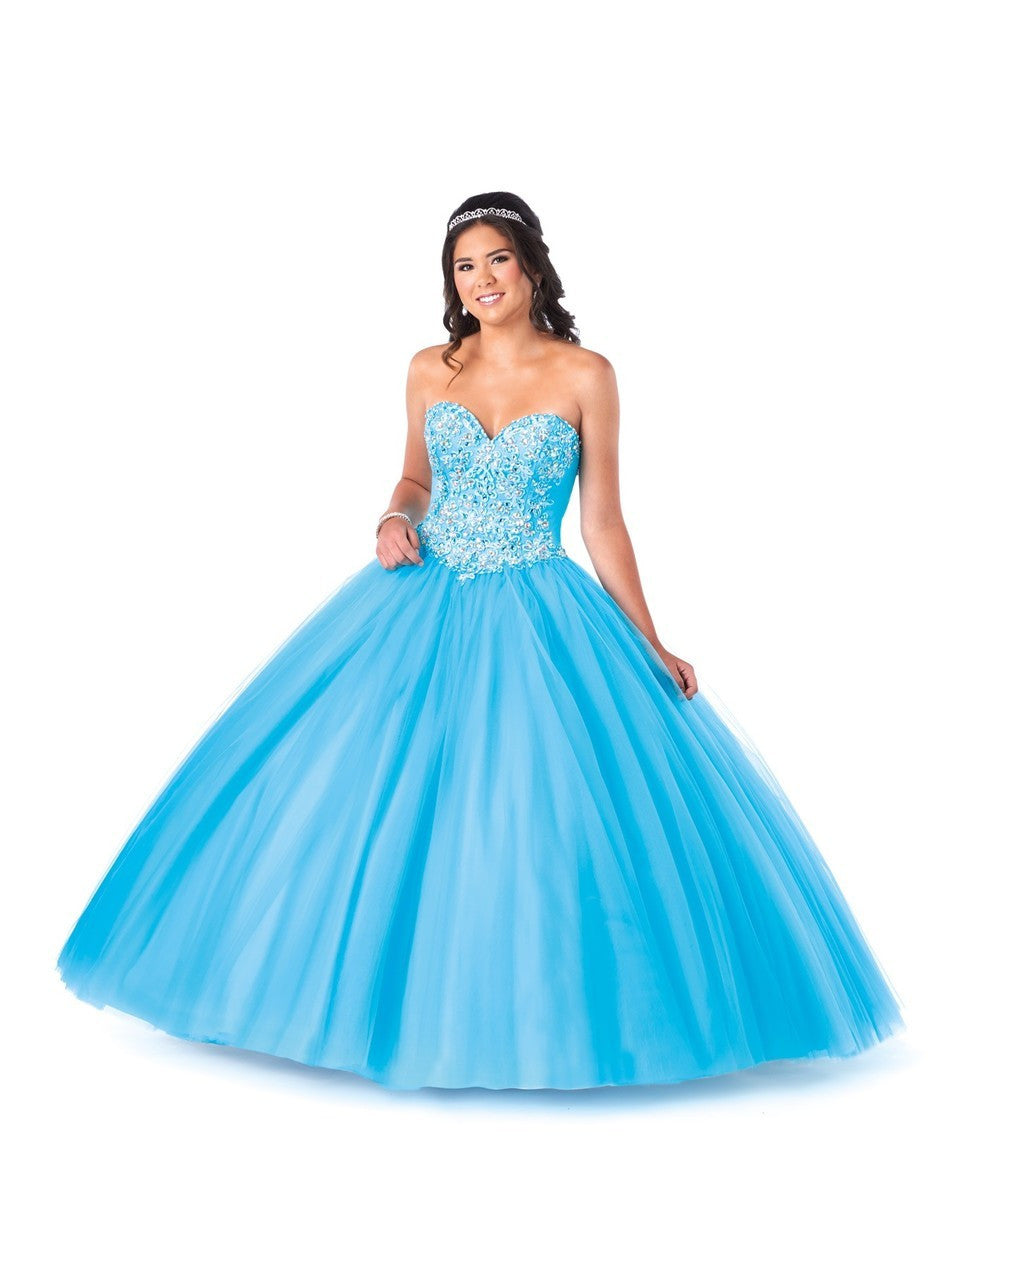 Sweetheart Tulle Ball Gown with Beaded Bodice and Corset Back ...